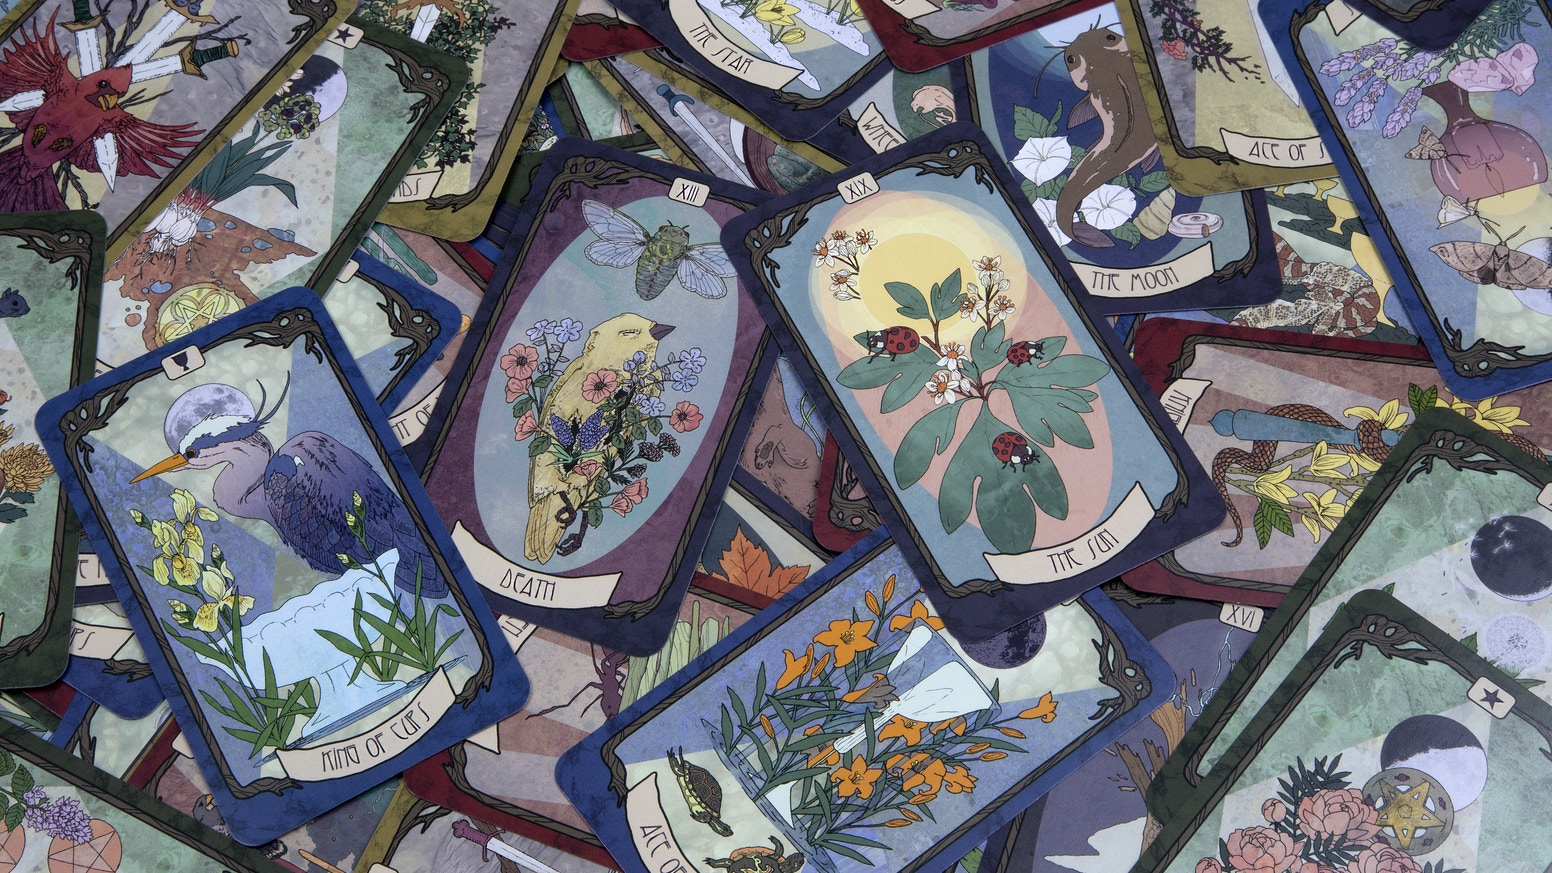 A 78 card tarot deck inspired by Art Nouveau and the natural world around us.